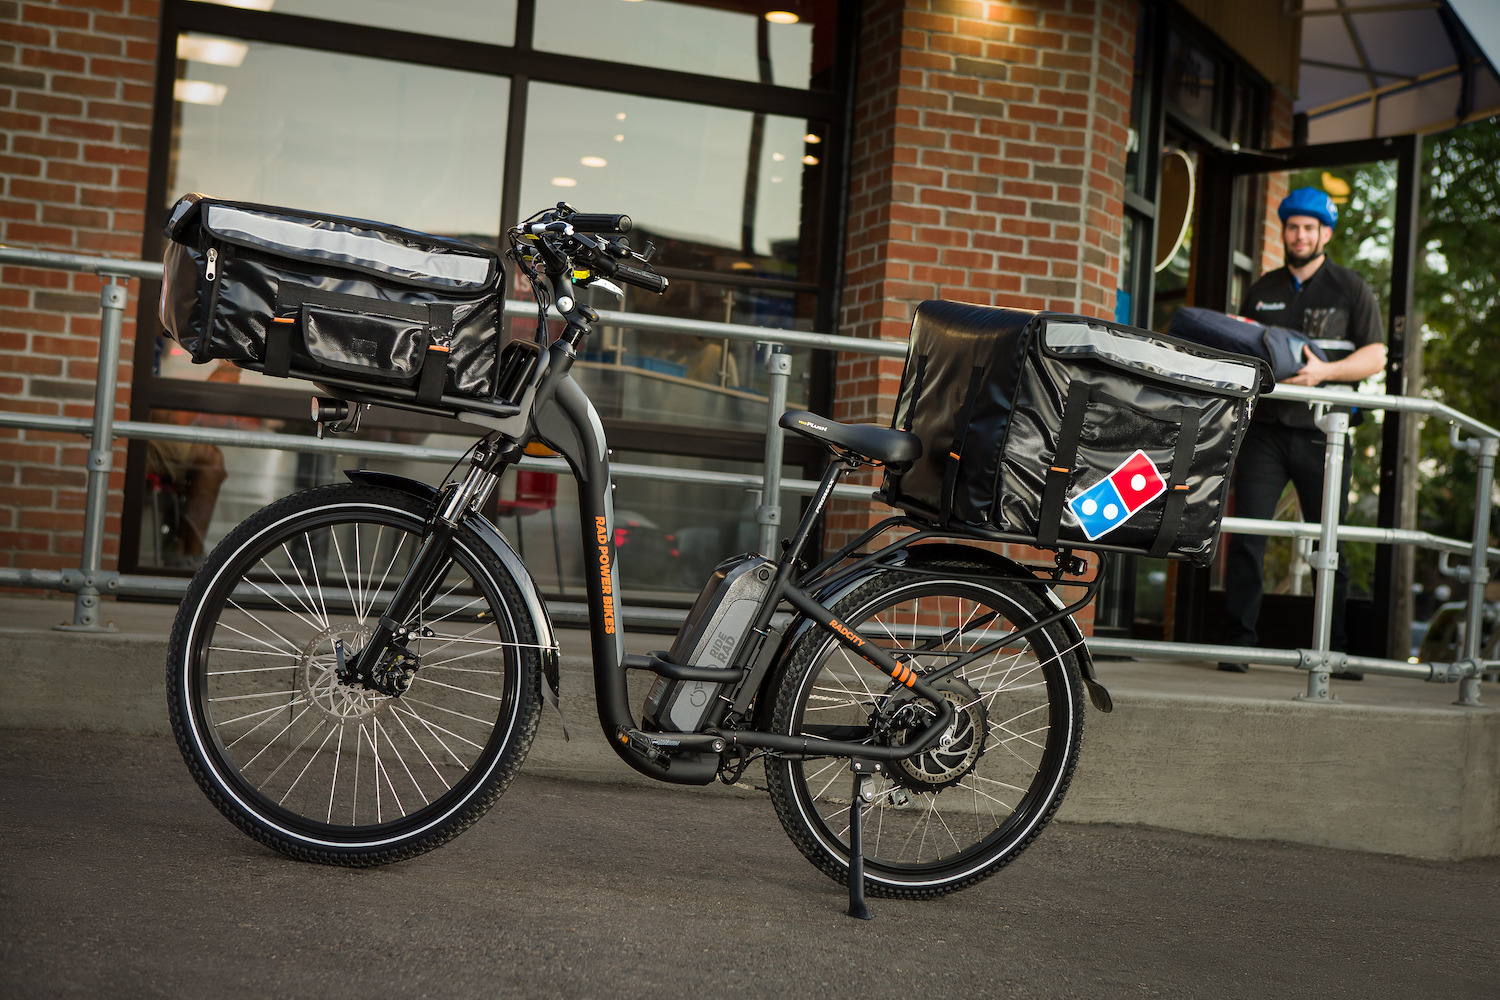 Delivery e-bikes to serve up hot pizza from Domino's nationwide